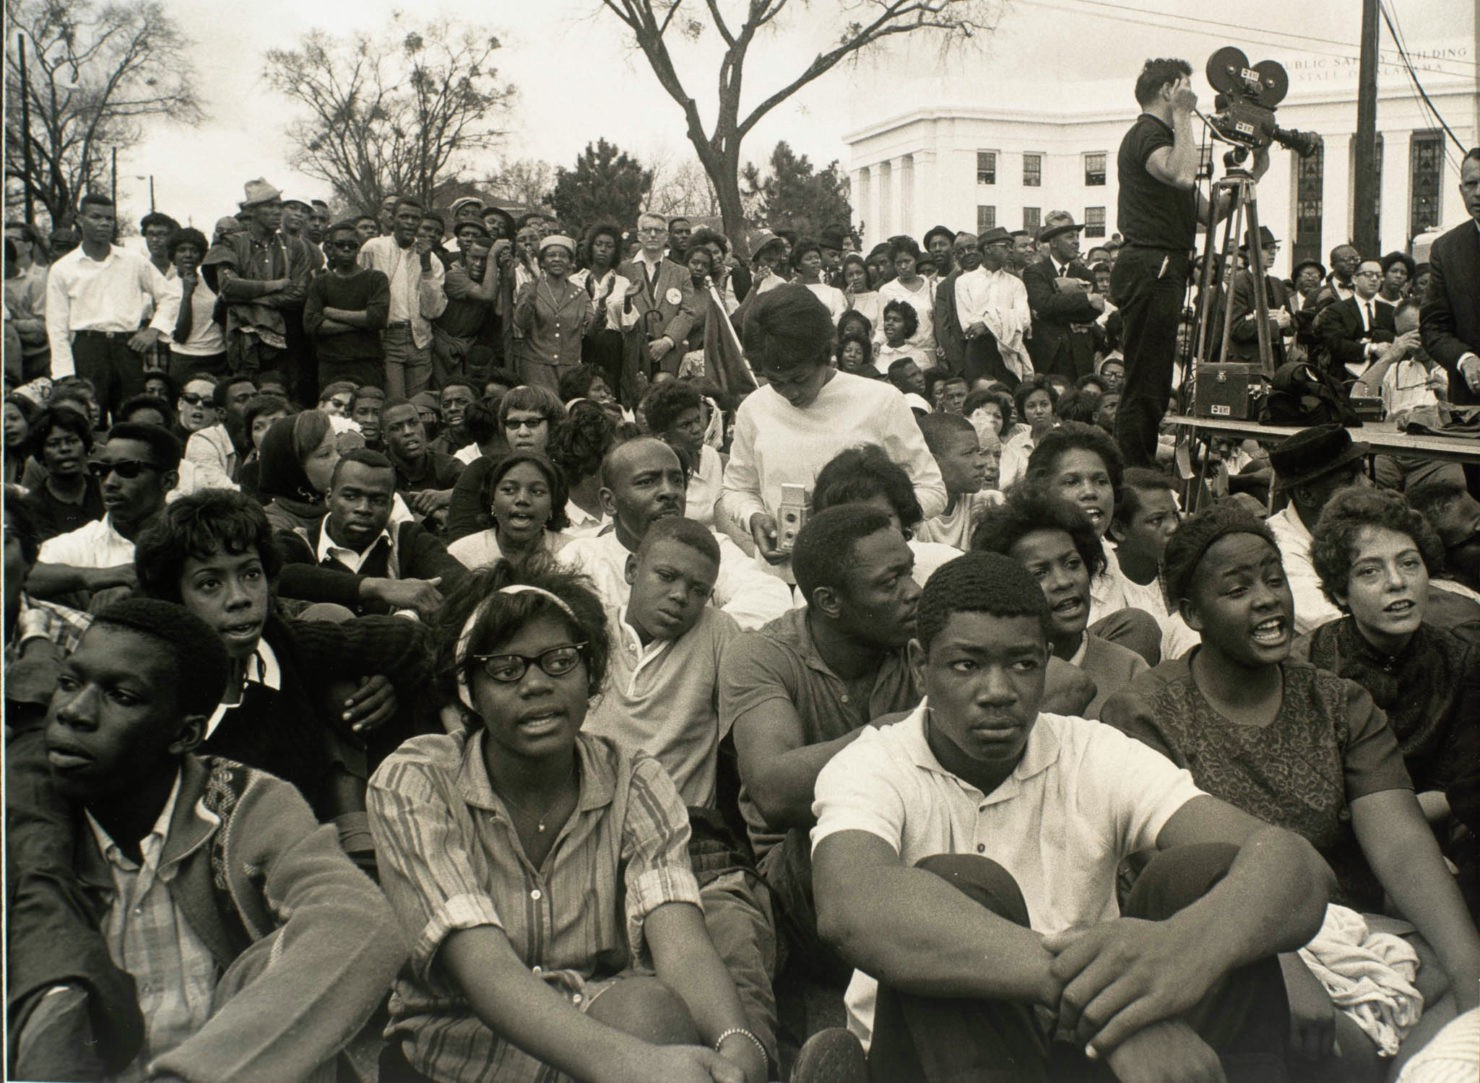 A crowd of black students sit together as photographers record the moment at the end of the march to Montgomery.